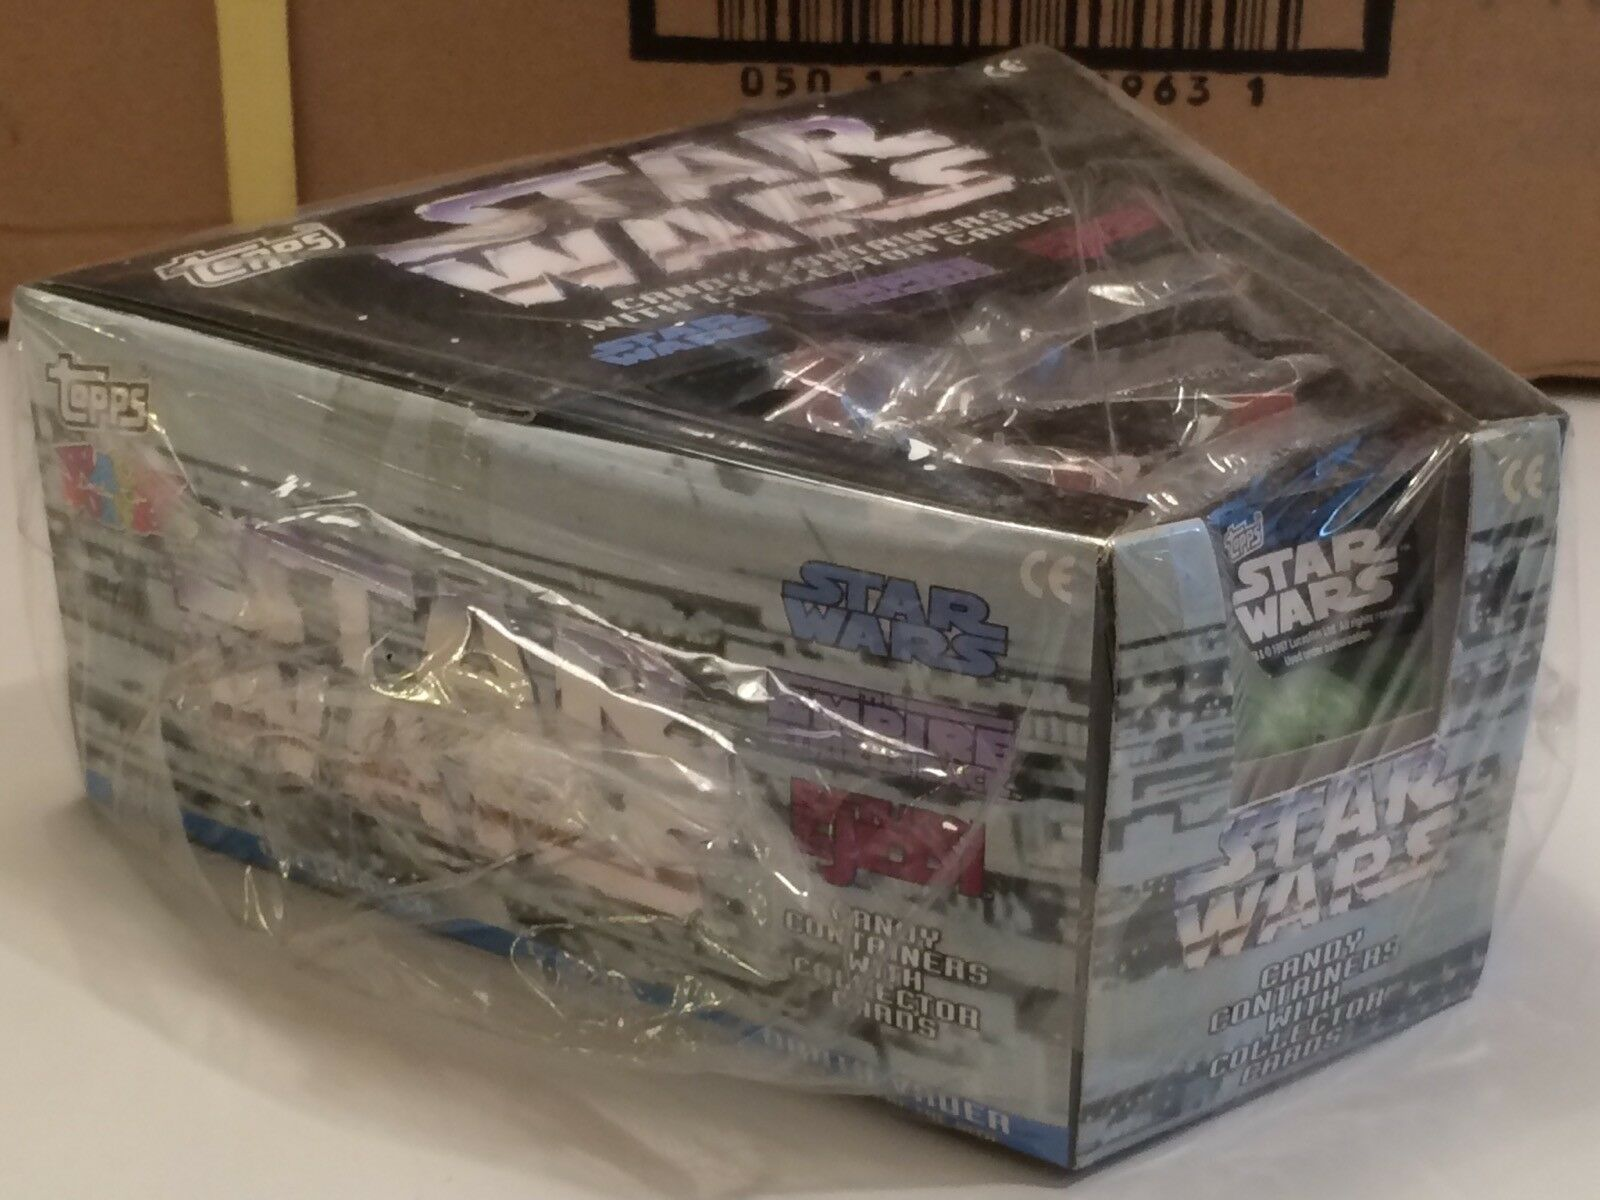 STAR WARS CANDY CONTAINER WITH COLLECTOR CARS UNGEÖFFNETER UNGEÖFFNETER UNGEÖFFNETER KARTON 24X12 FIGUREN dd9b01